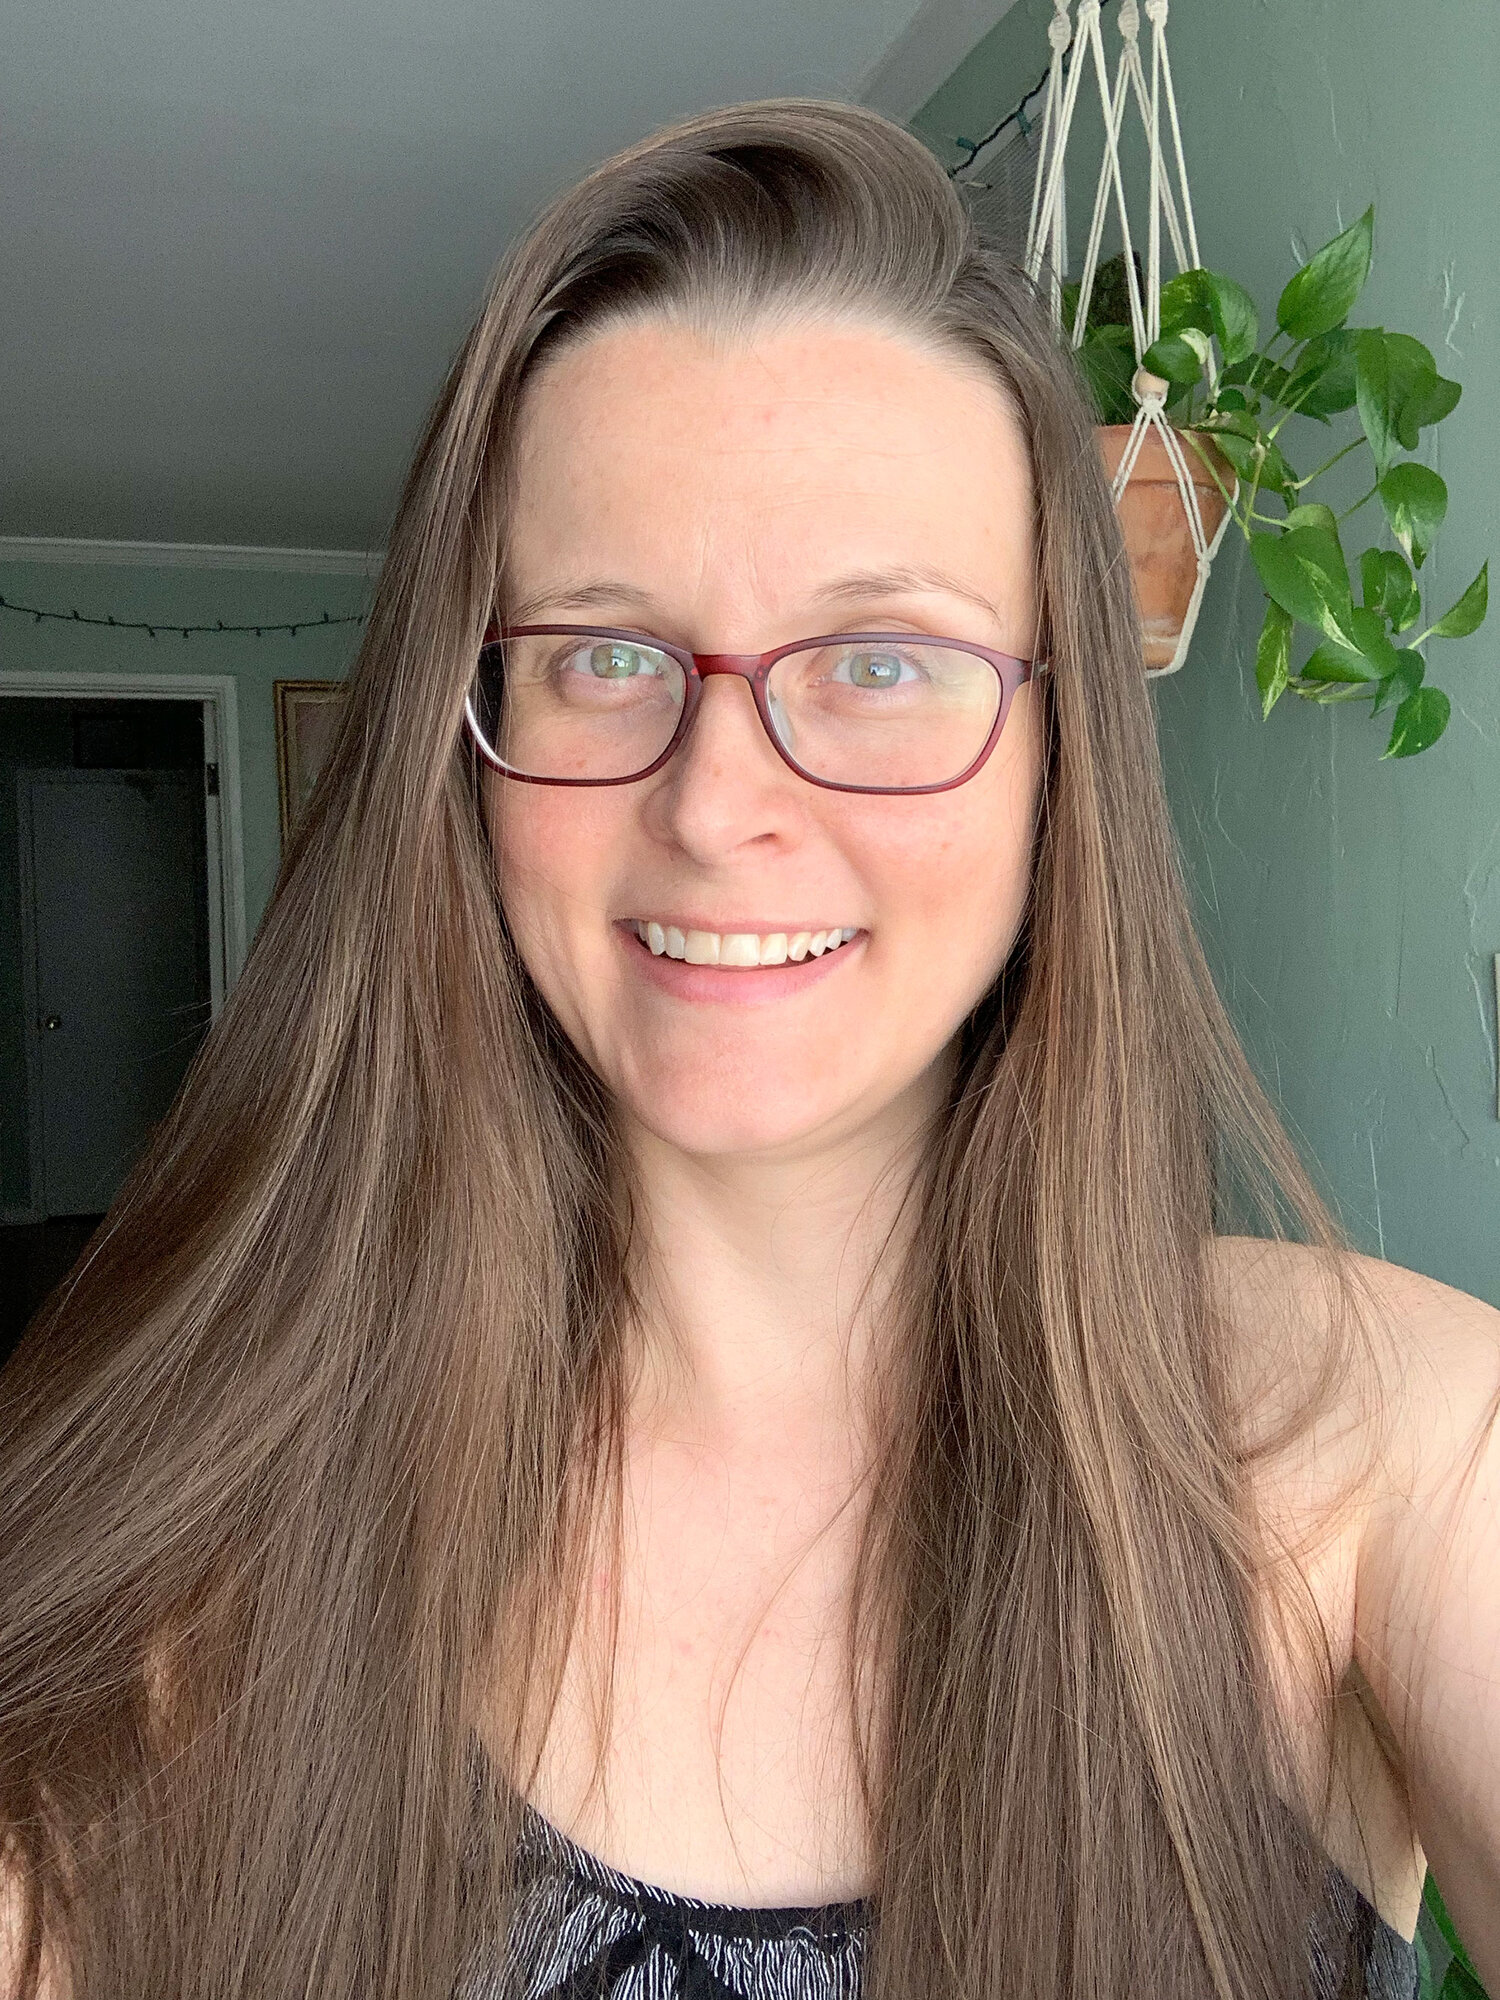 Fluffy, volume-packed hair by Innersense, clear glowing skin by Beautycounter and gua sha